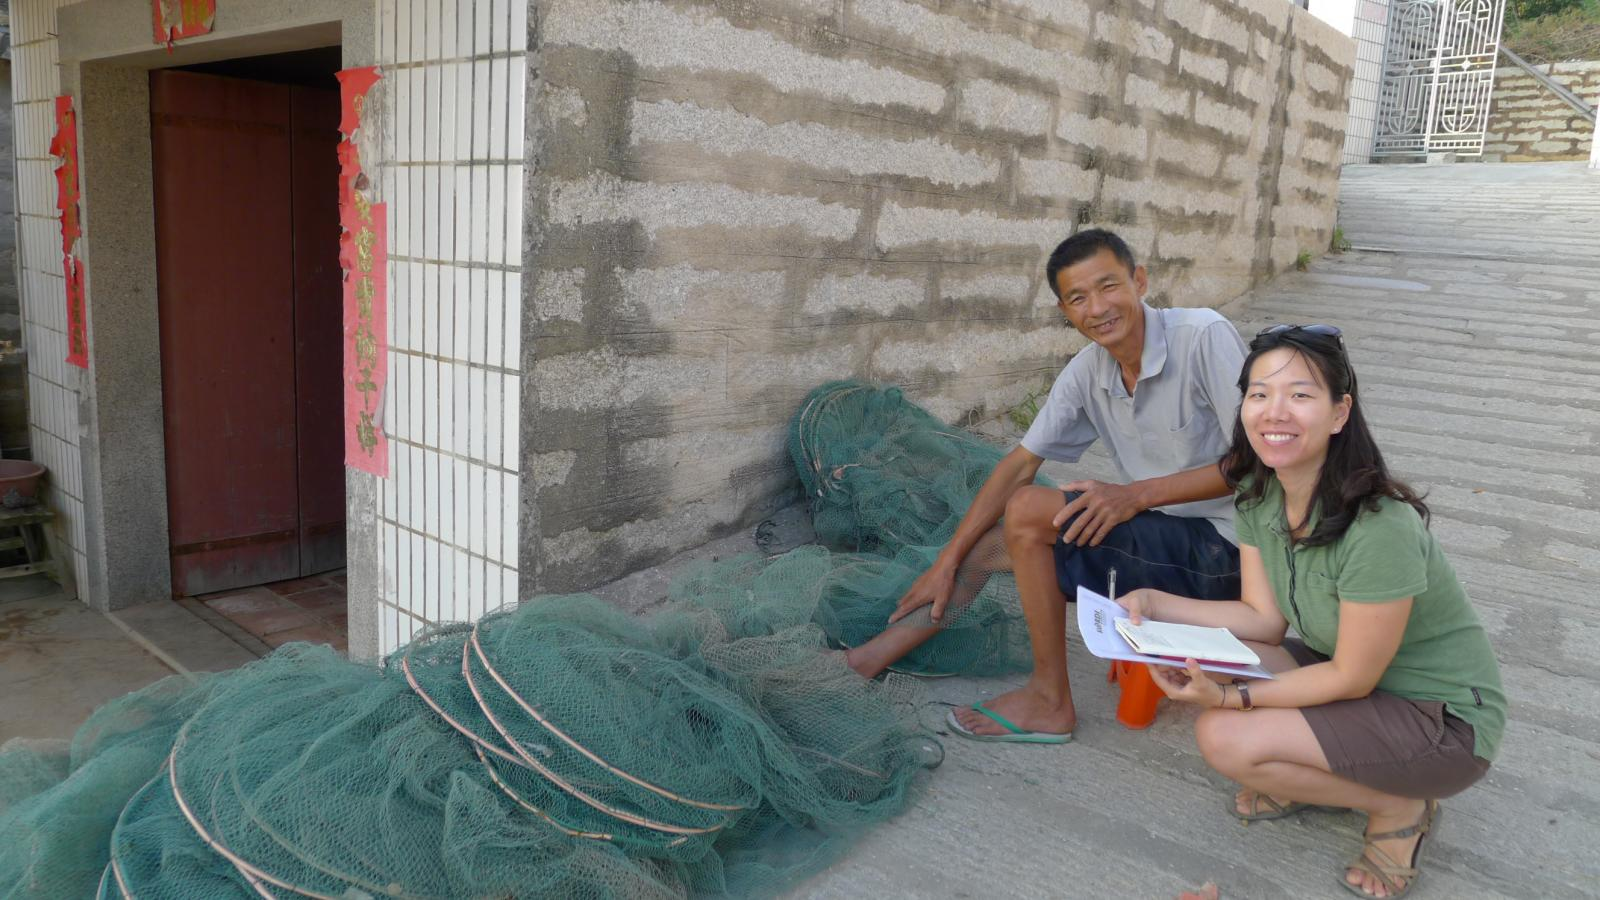 Doctoral student Rae Choi interviewed a Chinese fisherman for dissertation on coastal China.